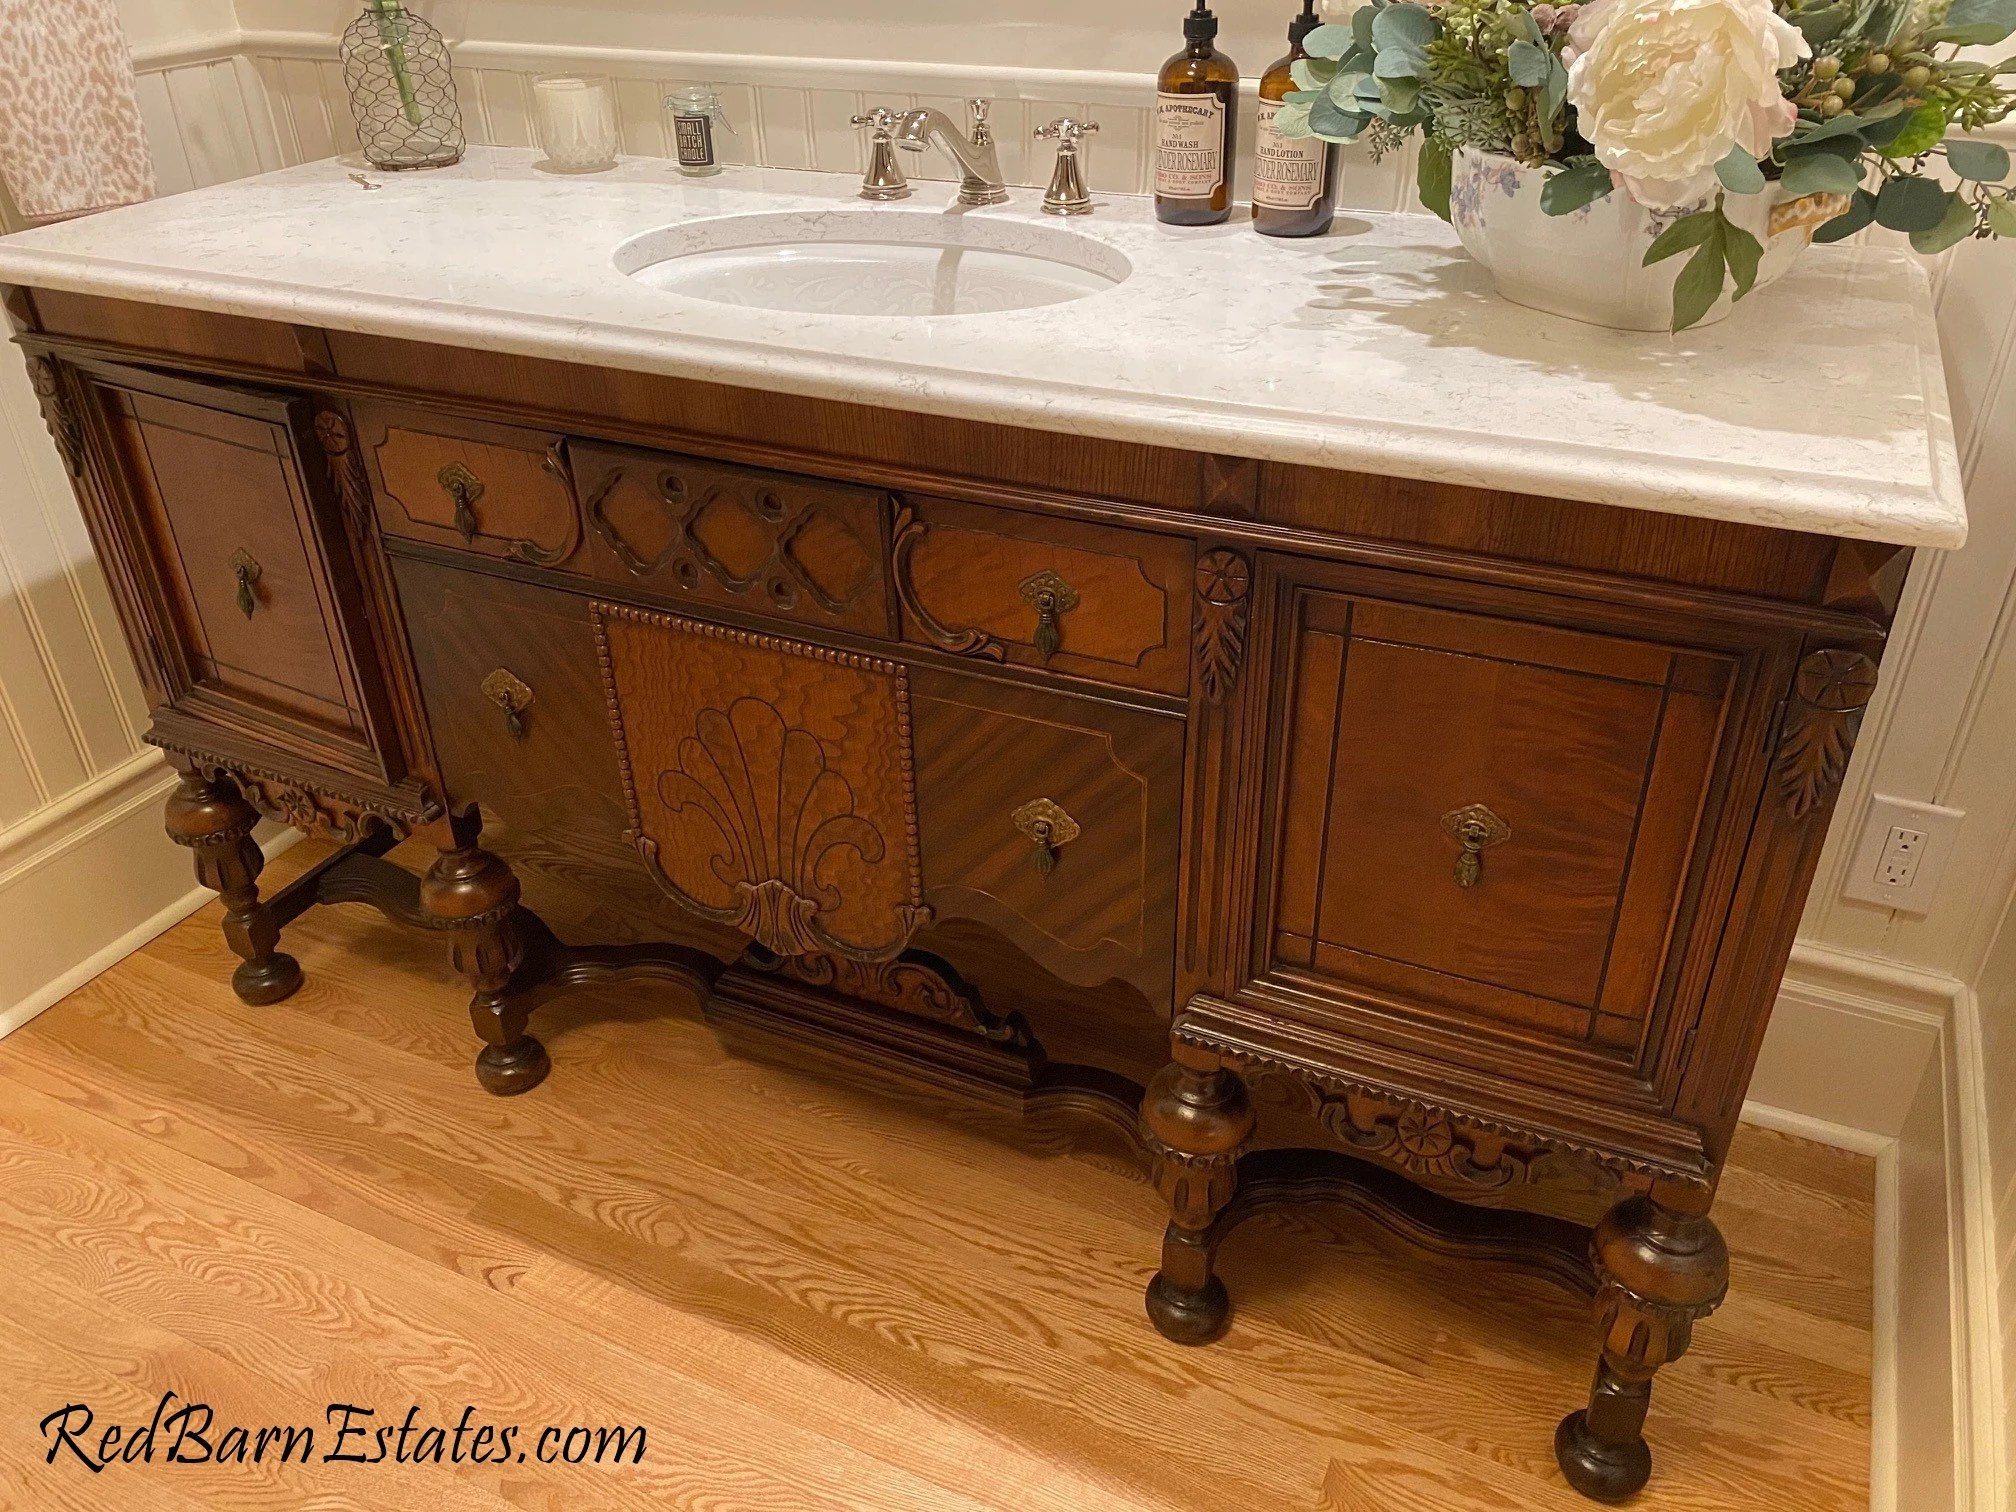 bathroom vanity antique we find convert from antique furniture wood finish renovation remodeling 61 to 66 wide